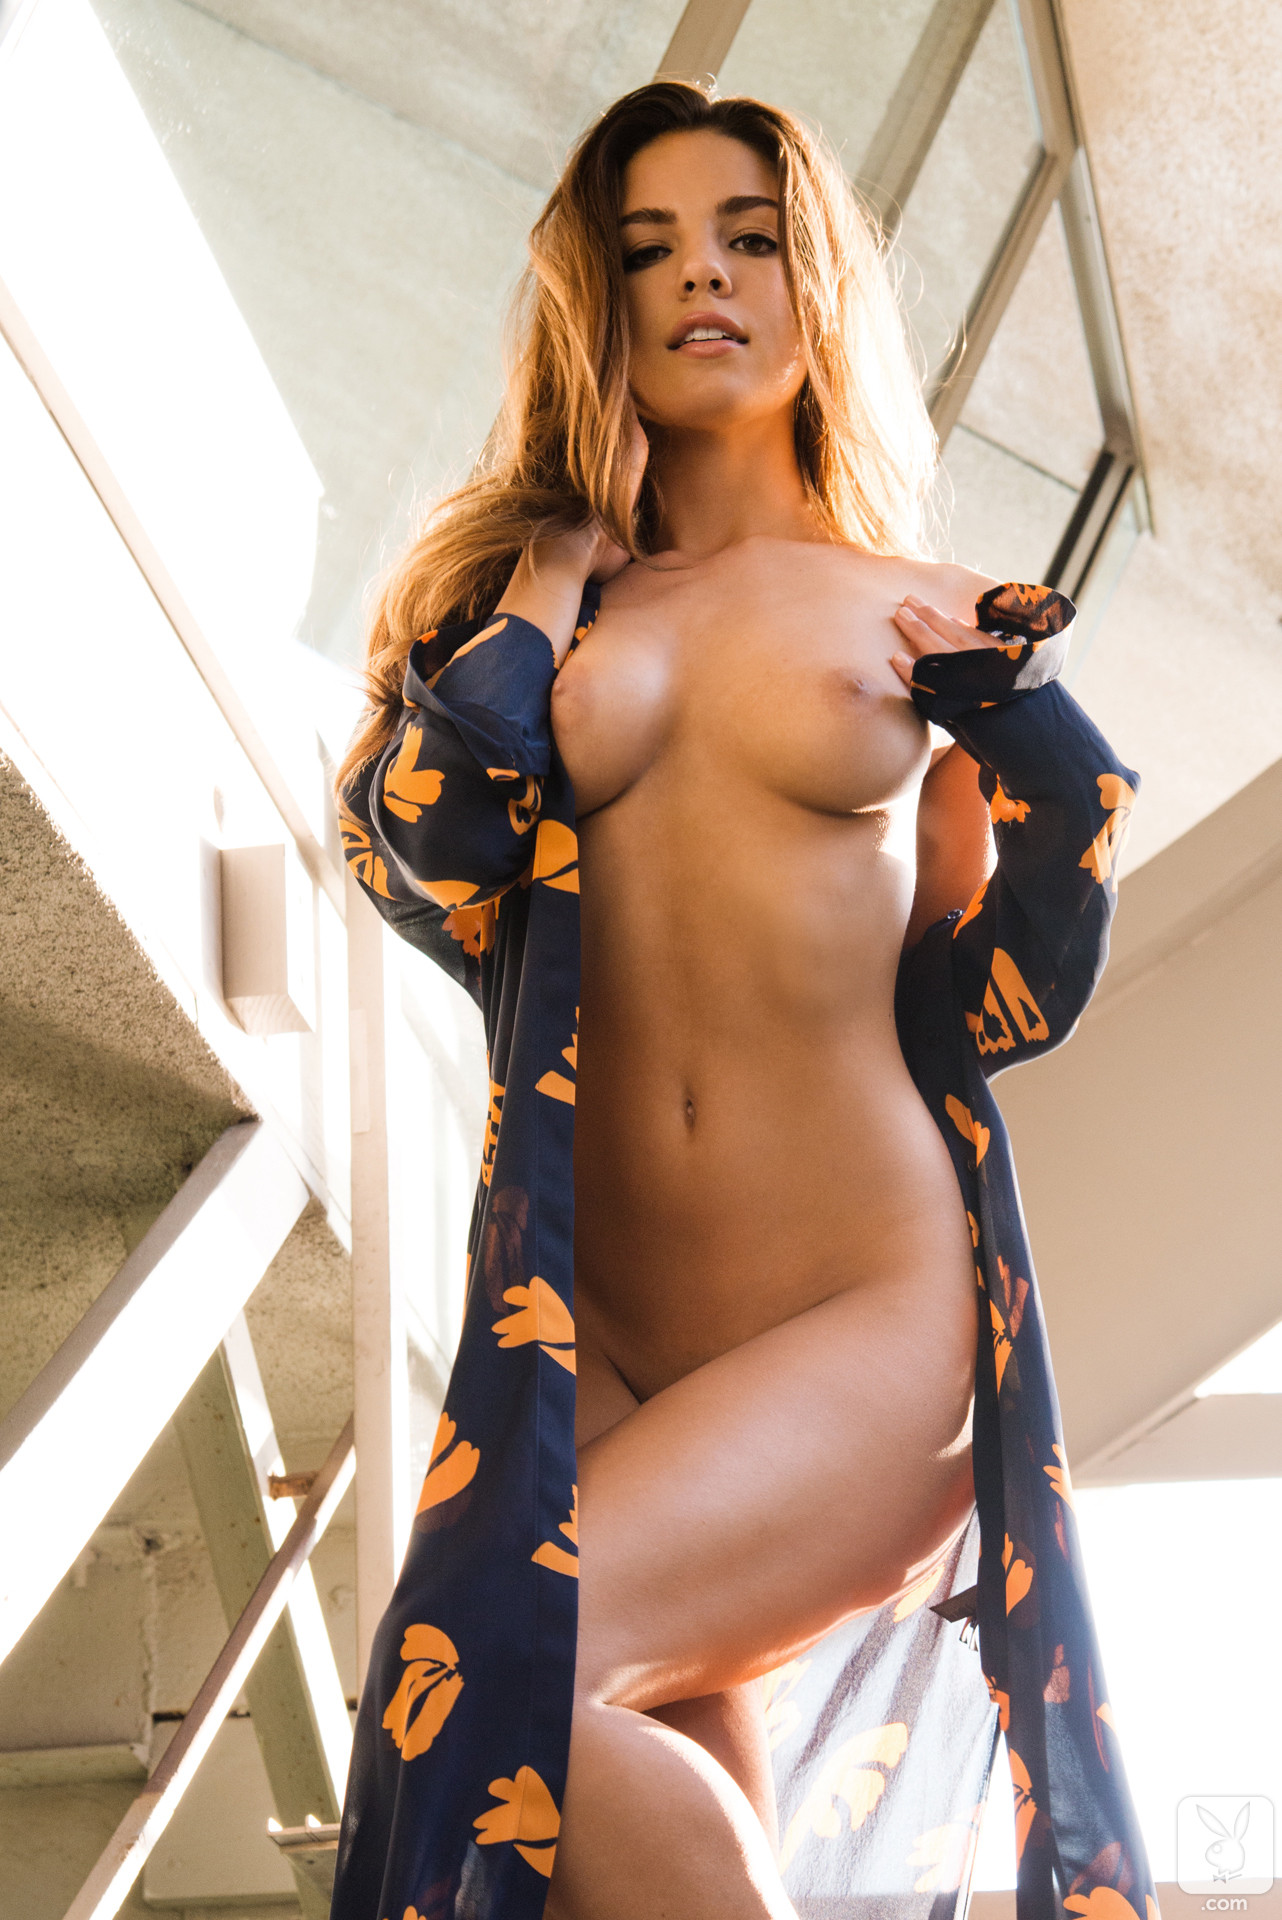 best-nude-photos-high-quality-boobs-tits-pussy-mix-vol3-58